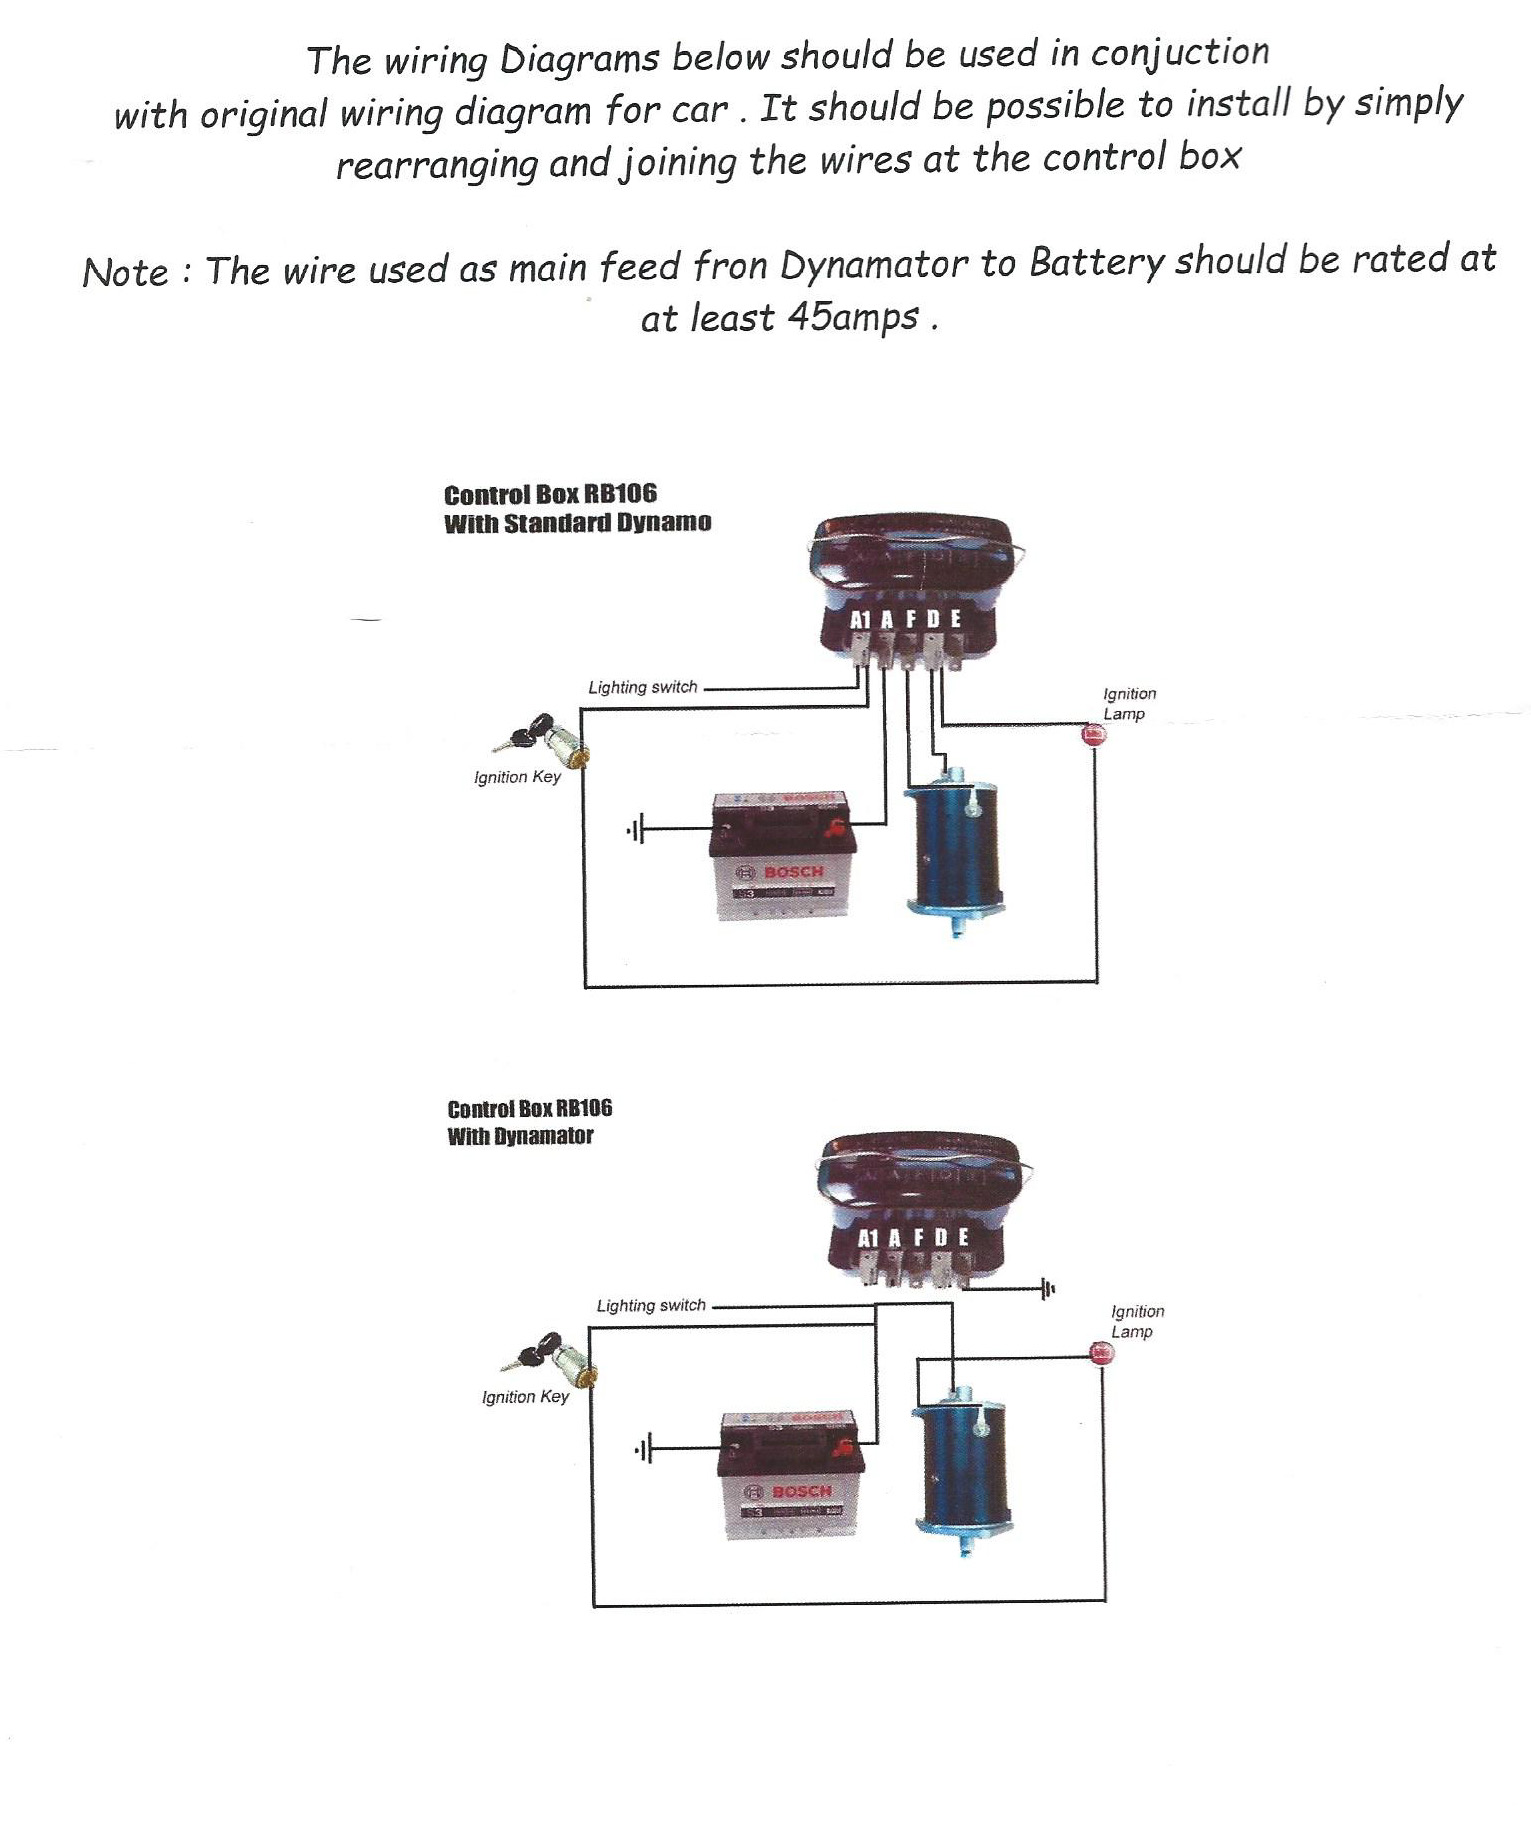 dynamo to alternator conversion wiring diagram 2002 pontiac grand prix